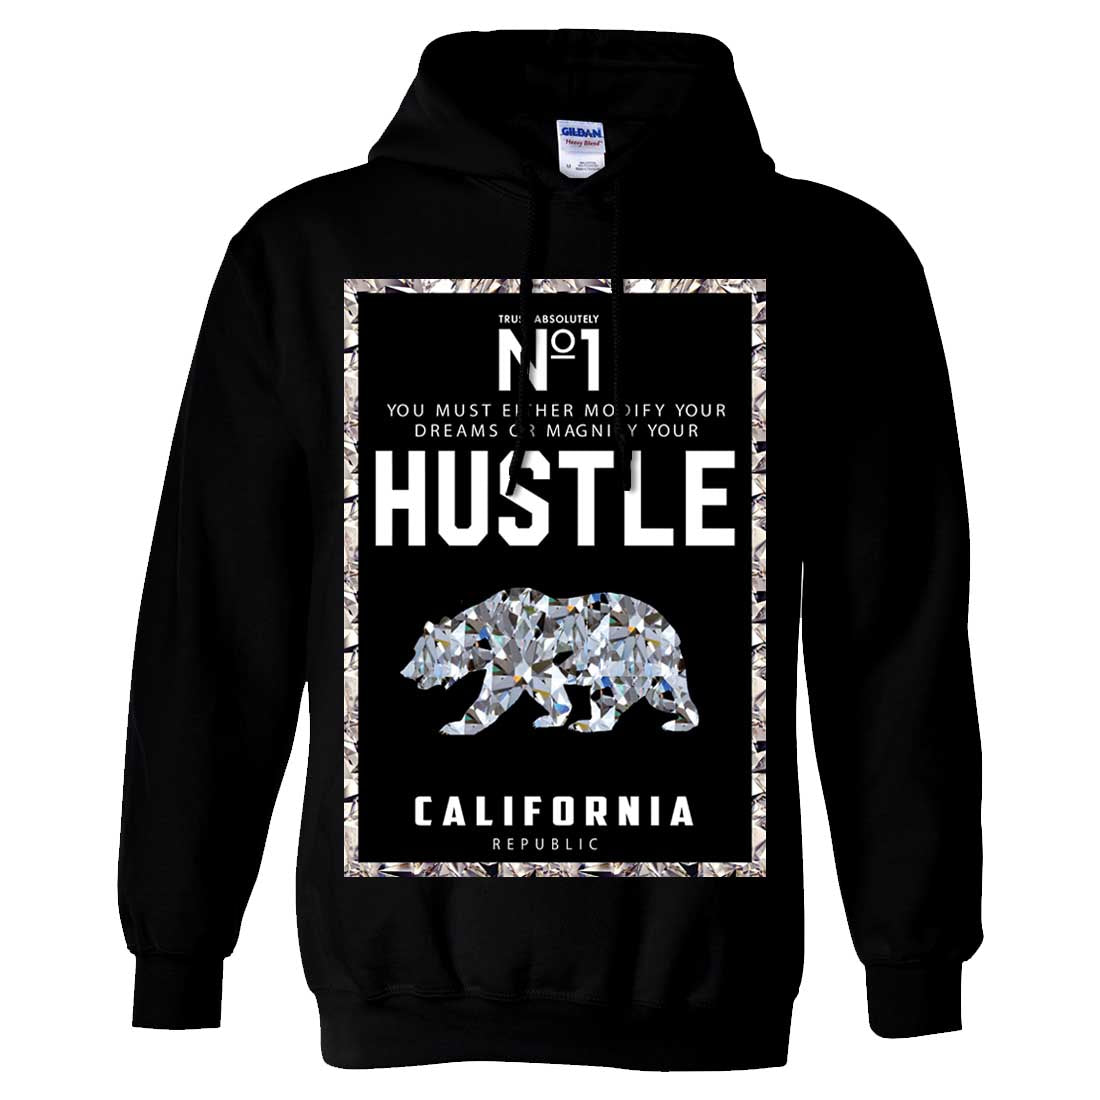 California Republic No. 1 Diamond Hustle Sweatshirt Hoodie